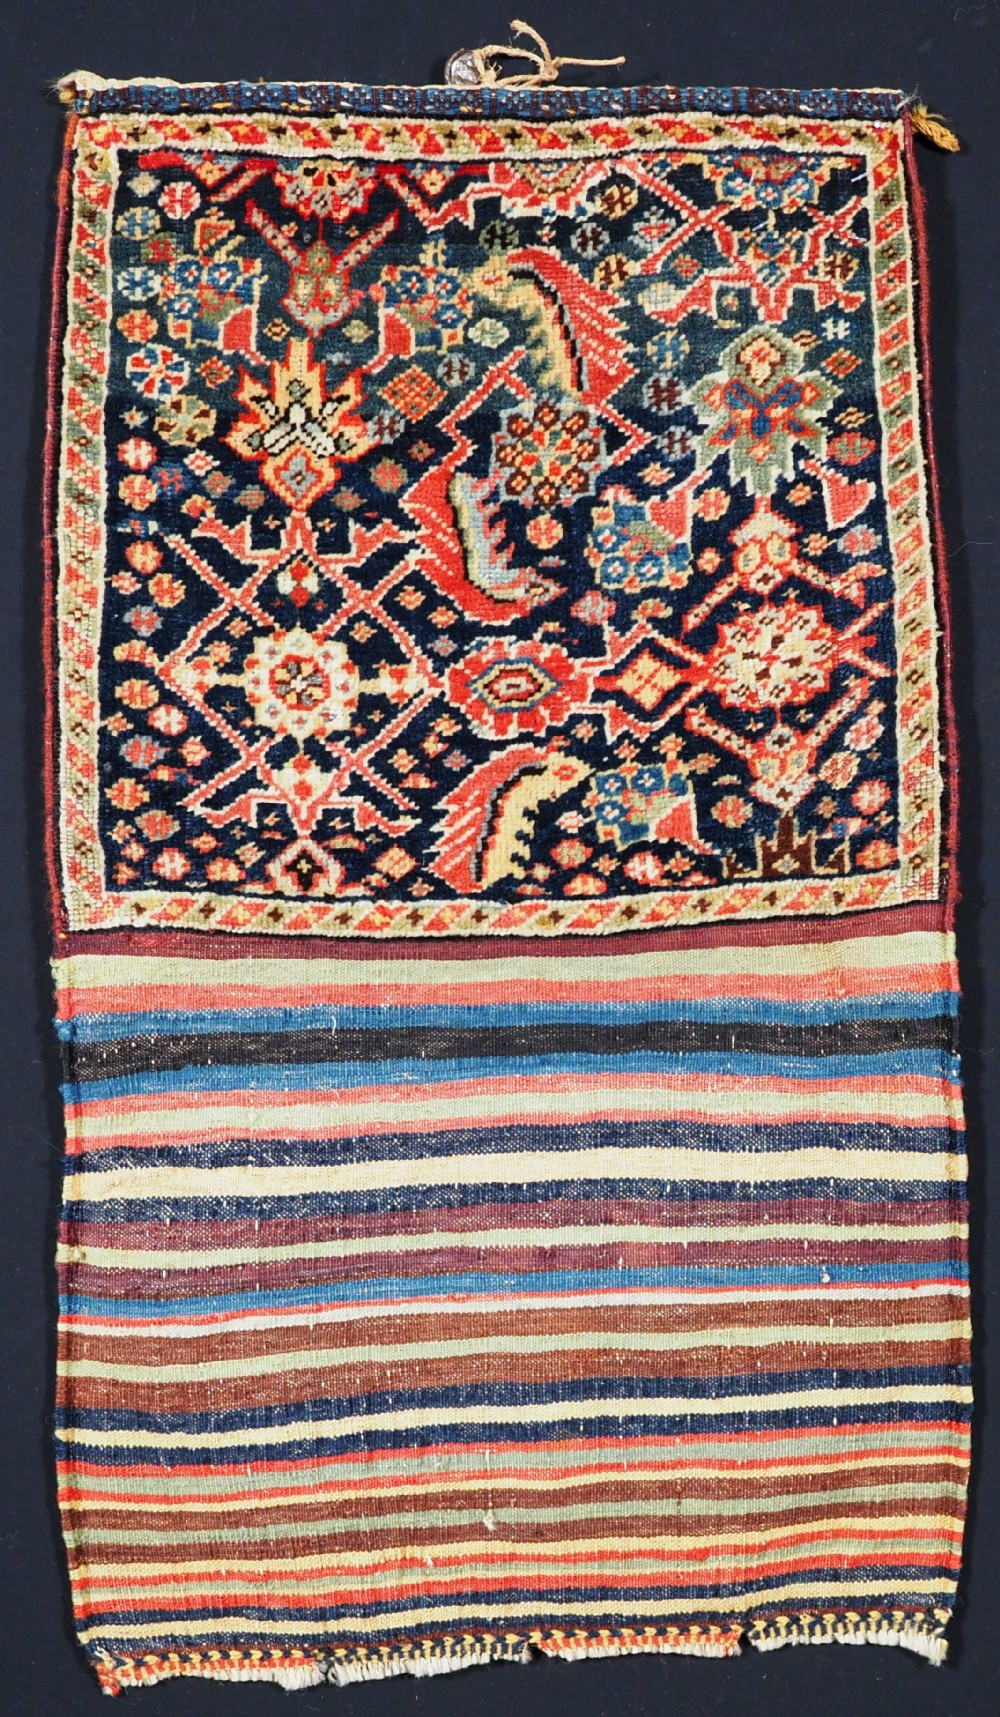 antique tribal qashqai bag herati design with striped plain weave back circa 1880